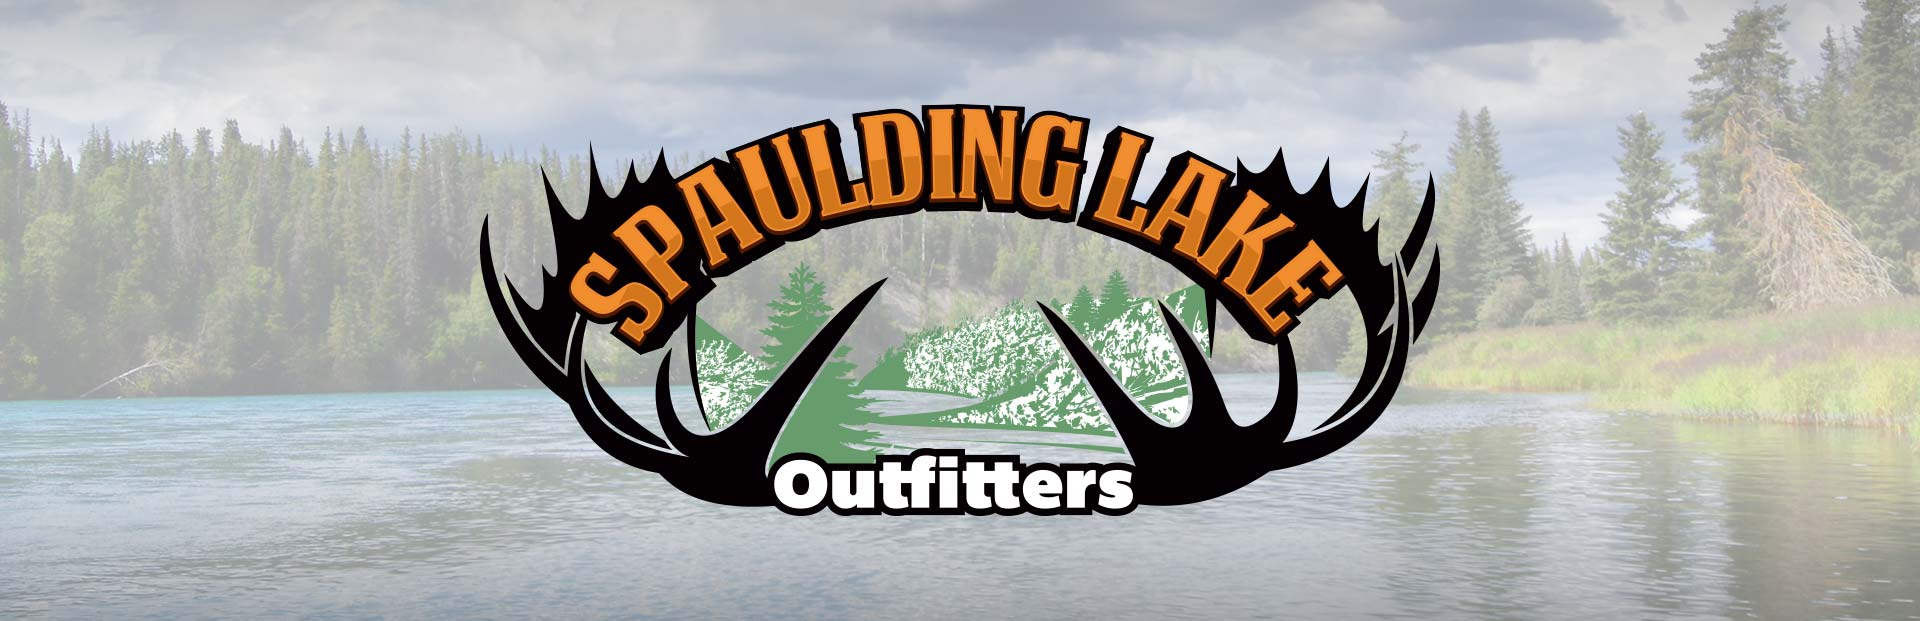 Spaulding Lake Outfitters Downloads